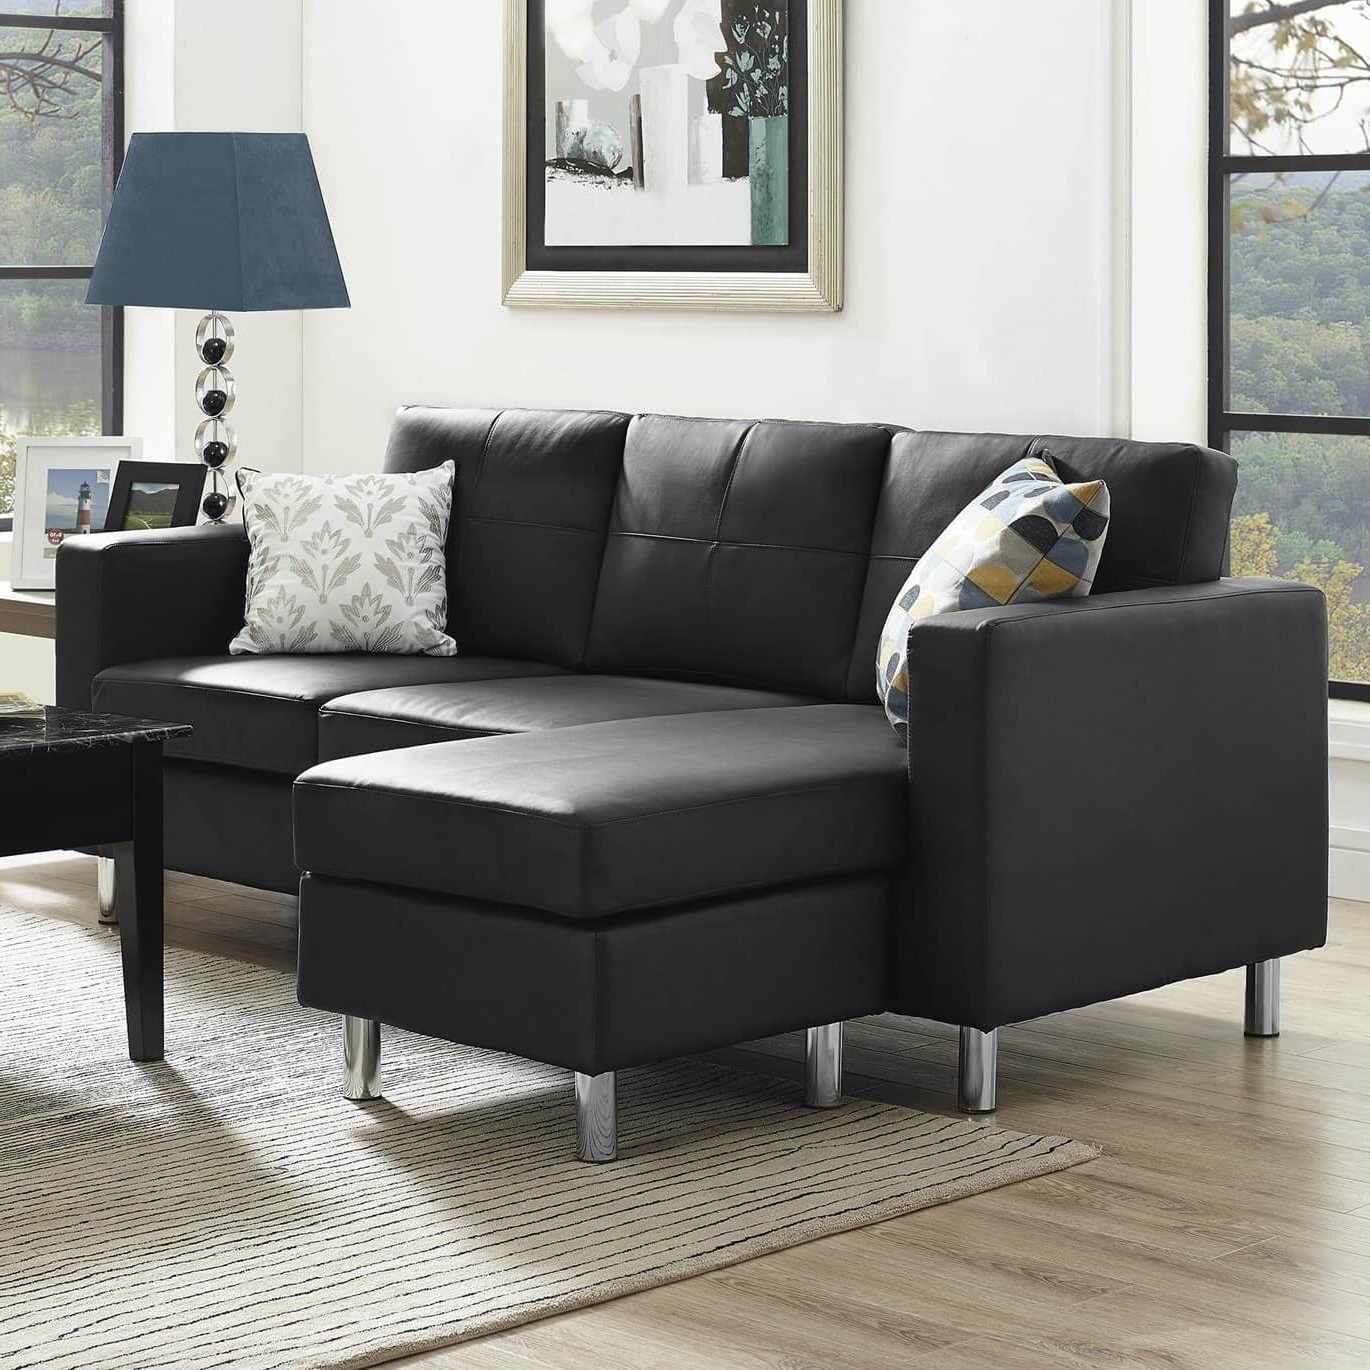 Sectional Sofas Under 500 Inside Fashionable 40 Cheap Sectional Sofas Under $500 For  (View 10 of 20)